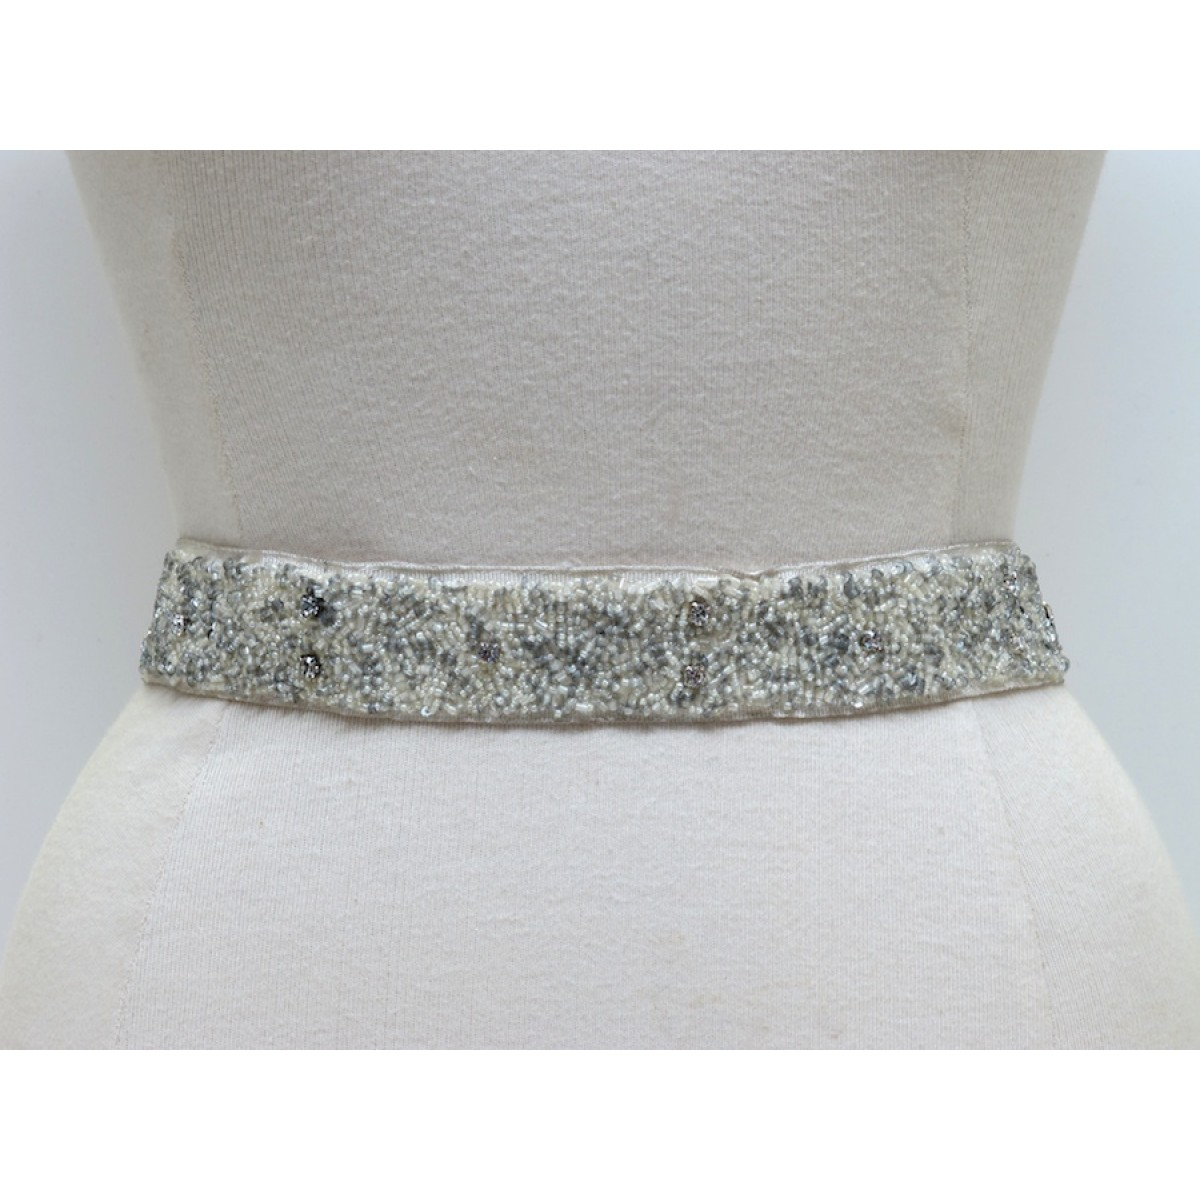 Narrow Mixed Bead & Scattered Crystal Belt